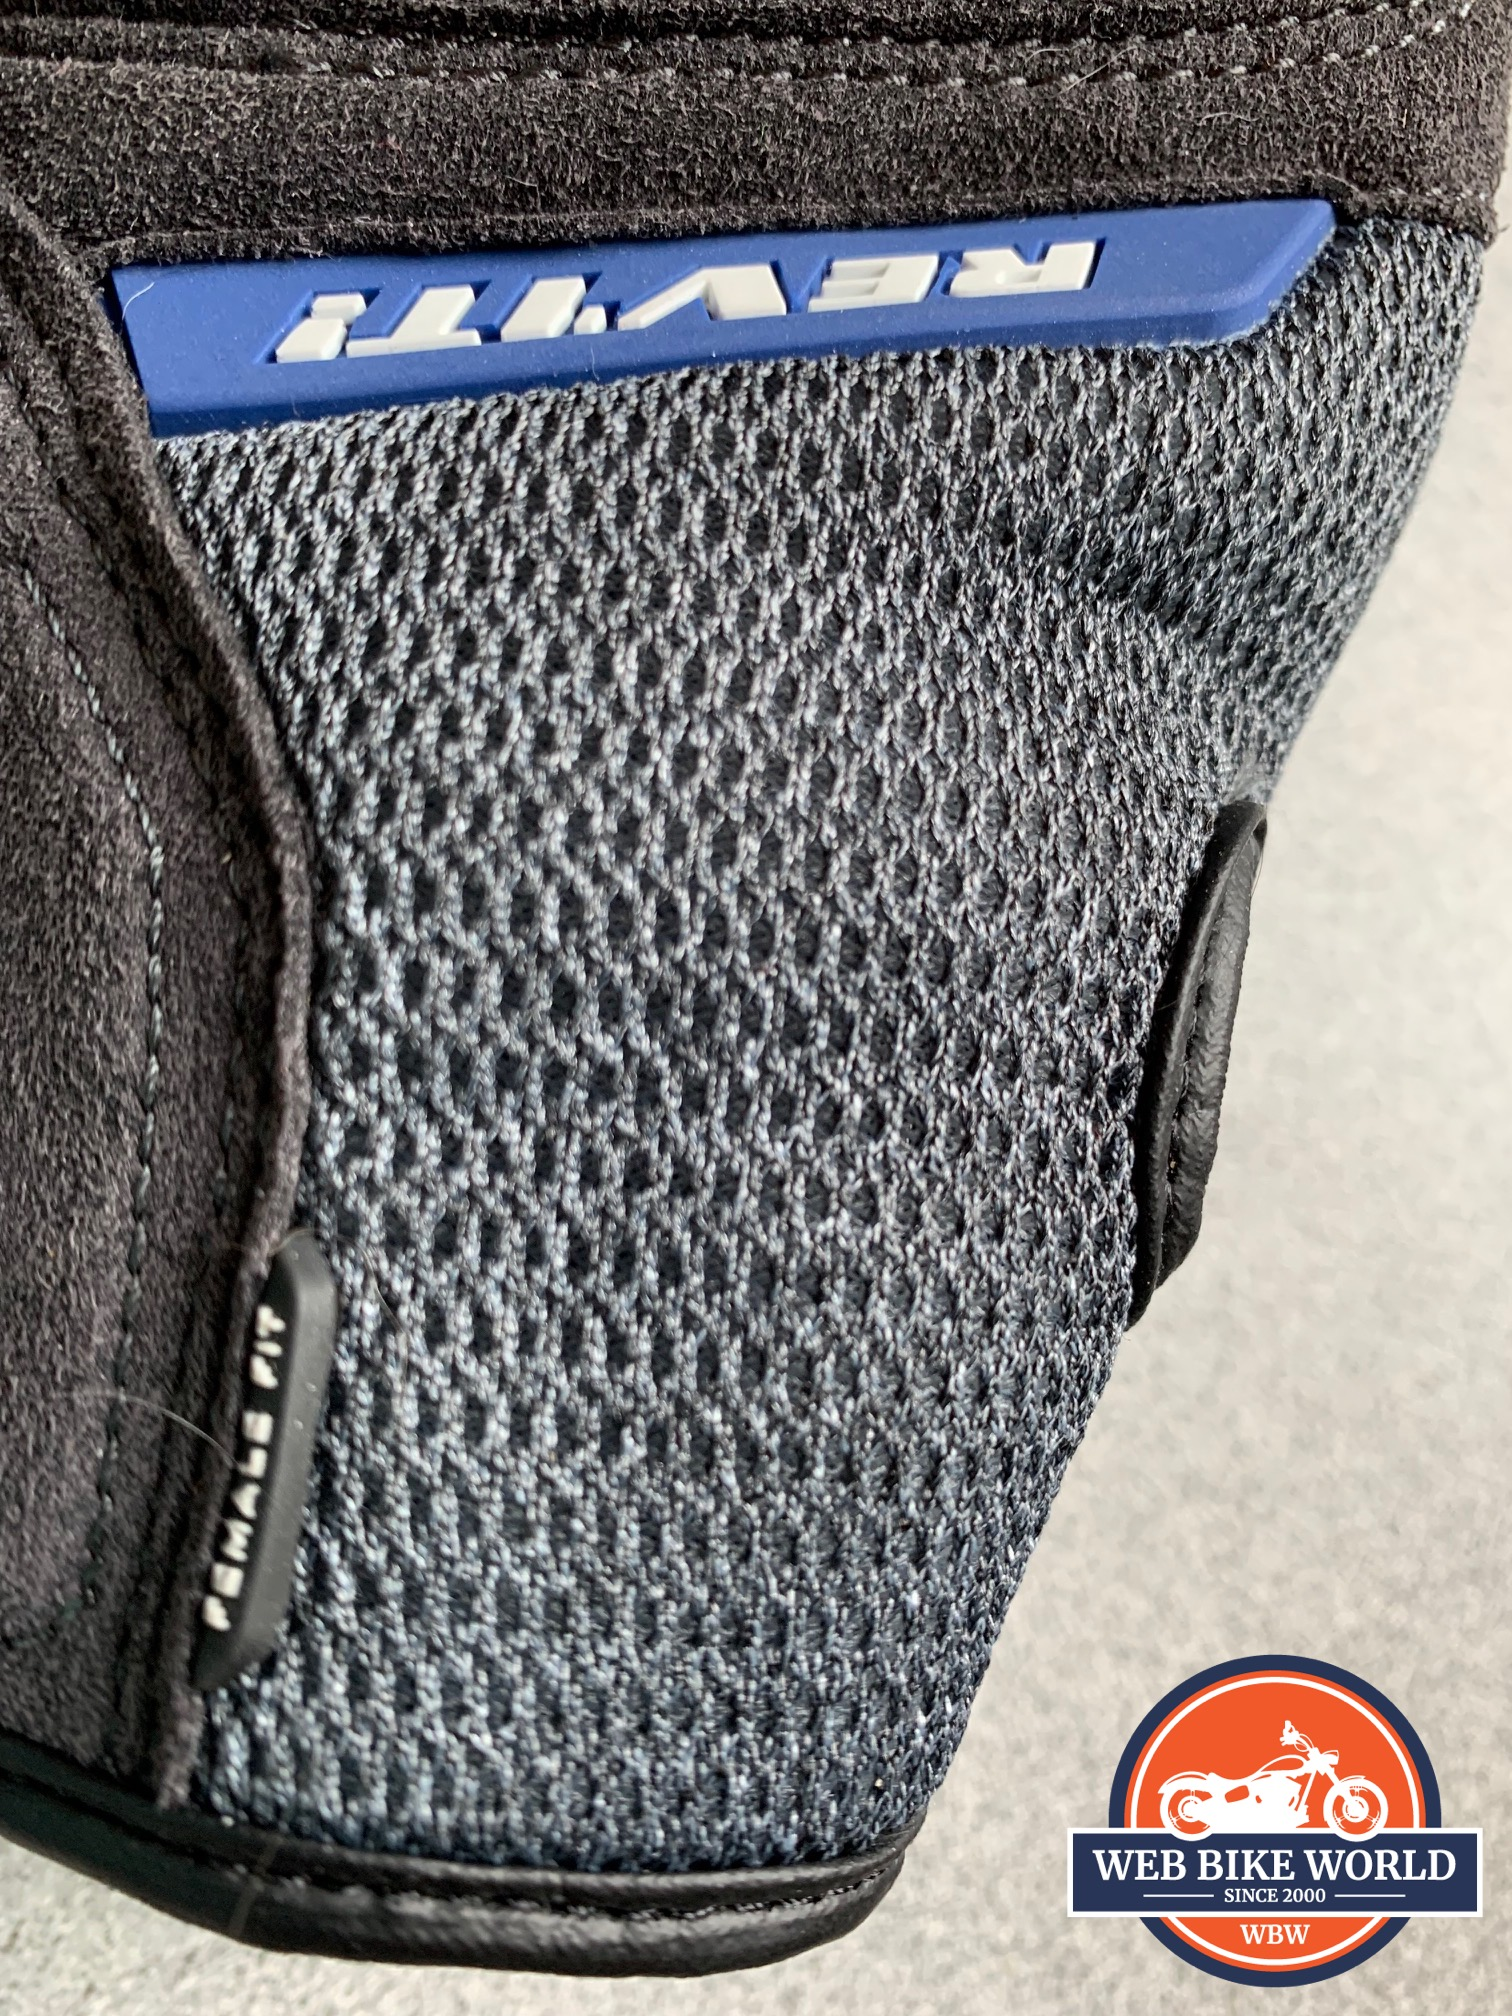 A view of the 3D air mesh on the REV'IT! Volcano gloves